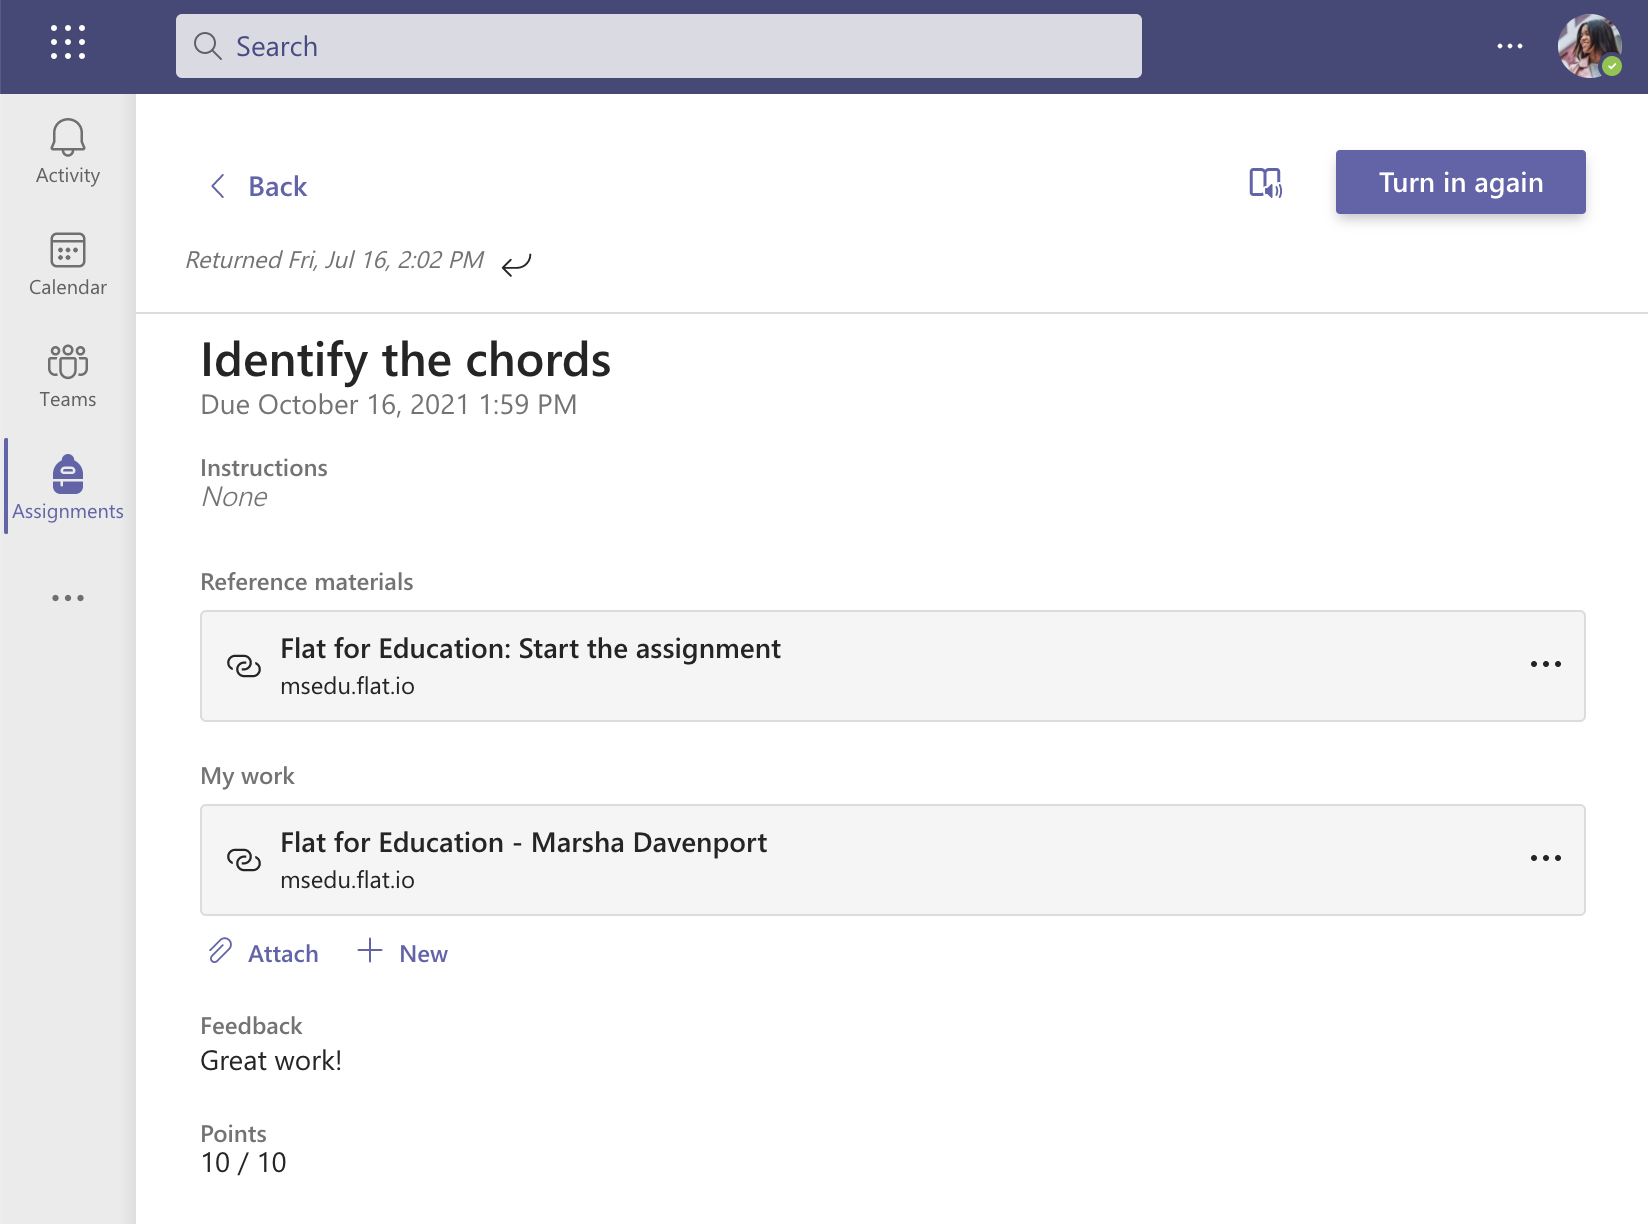 A student submission on Microsoft Teams with graded and links synced by Flat for Education